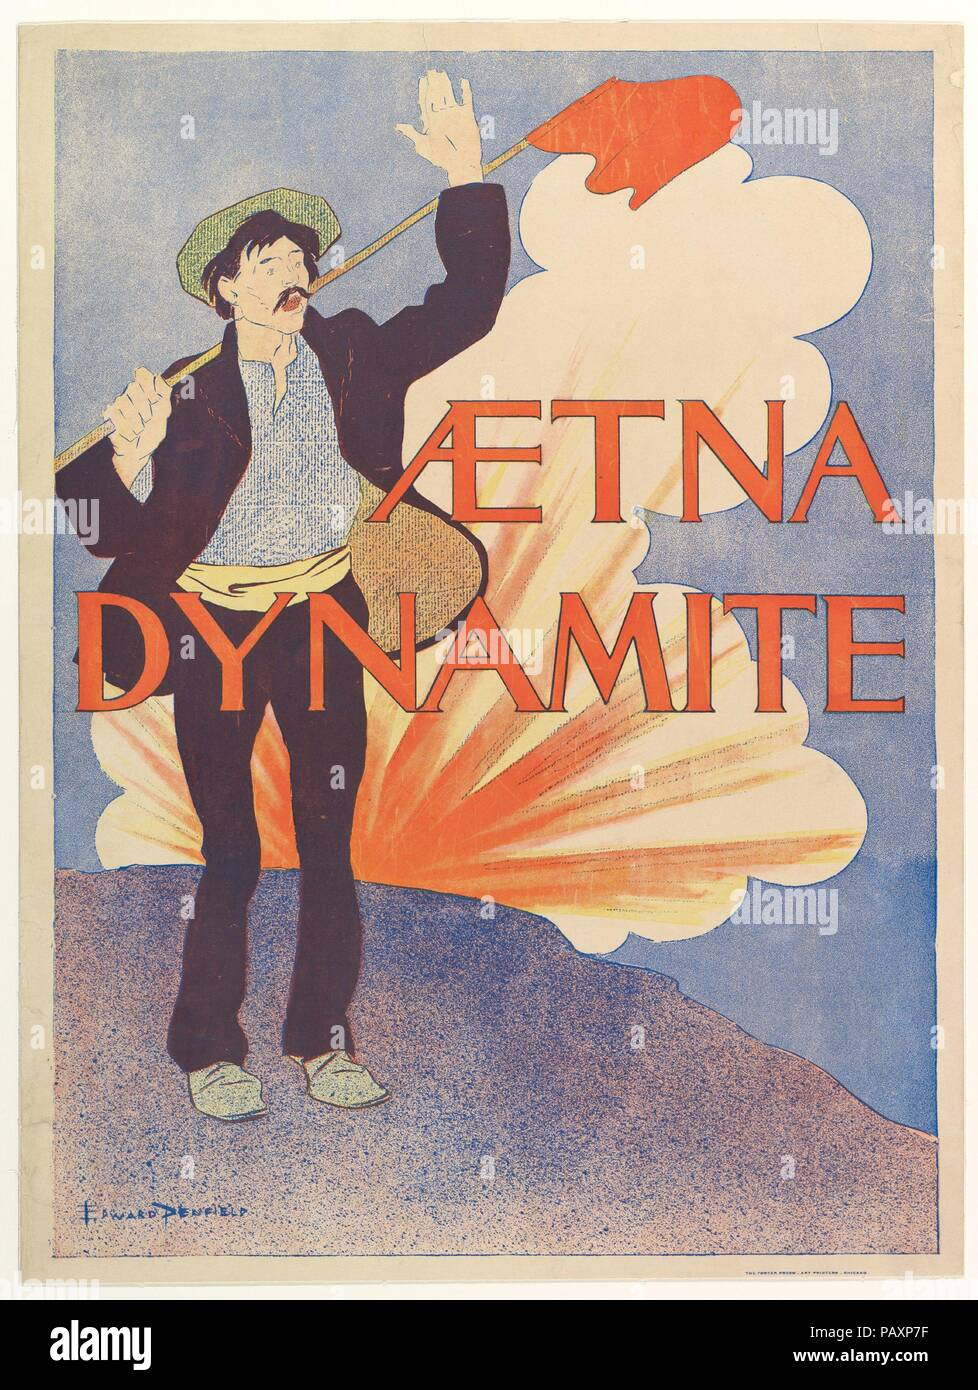 Aetna Dynamite. Artist: Edward Penfield (American, Brooklyn, New York 1866-1925 Beacon, New York). Dimensions: Sheet: 18 13/16 × 14 3/16 in. (47.8 × 36 cm)  Image: 18 1/16 × 13 1/4 in. (45.8 × 33.6 cm). Printer: The Poster Art Press. Publisher: Aetna Powder Company. Date: 1895. Museum: Metropolitan Museum of Art, New York, USA. - Stock Image